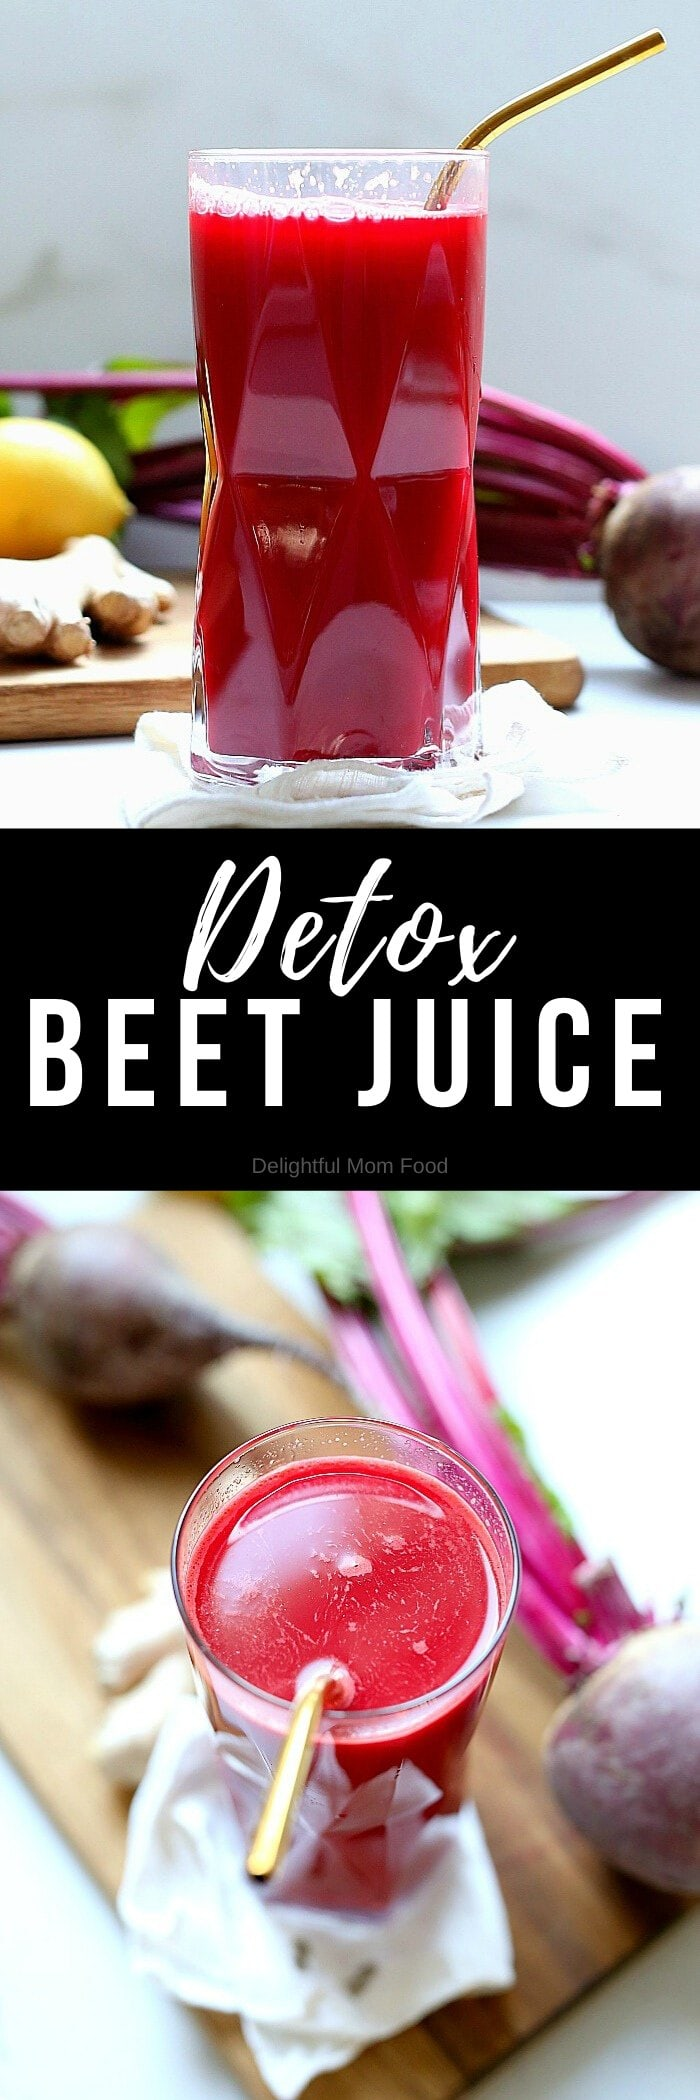 The BEST detox beet juice recipe! This healthy and easy homemade beet juice is made quickly with ingredients that detox for a body cleanse, to help with weight loss, improve skin, lower blood pressure and increase energy! #detox #beetjuice #detoxdrinks #blender #juicer #beets #recipe #bodycleanse #weightloss #recipe #healthy #easy #quick | Recipe at Delightful Mom Food